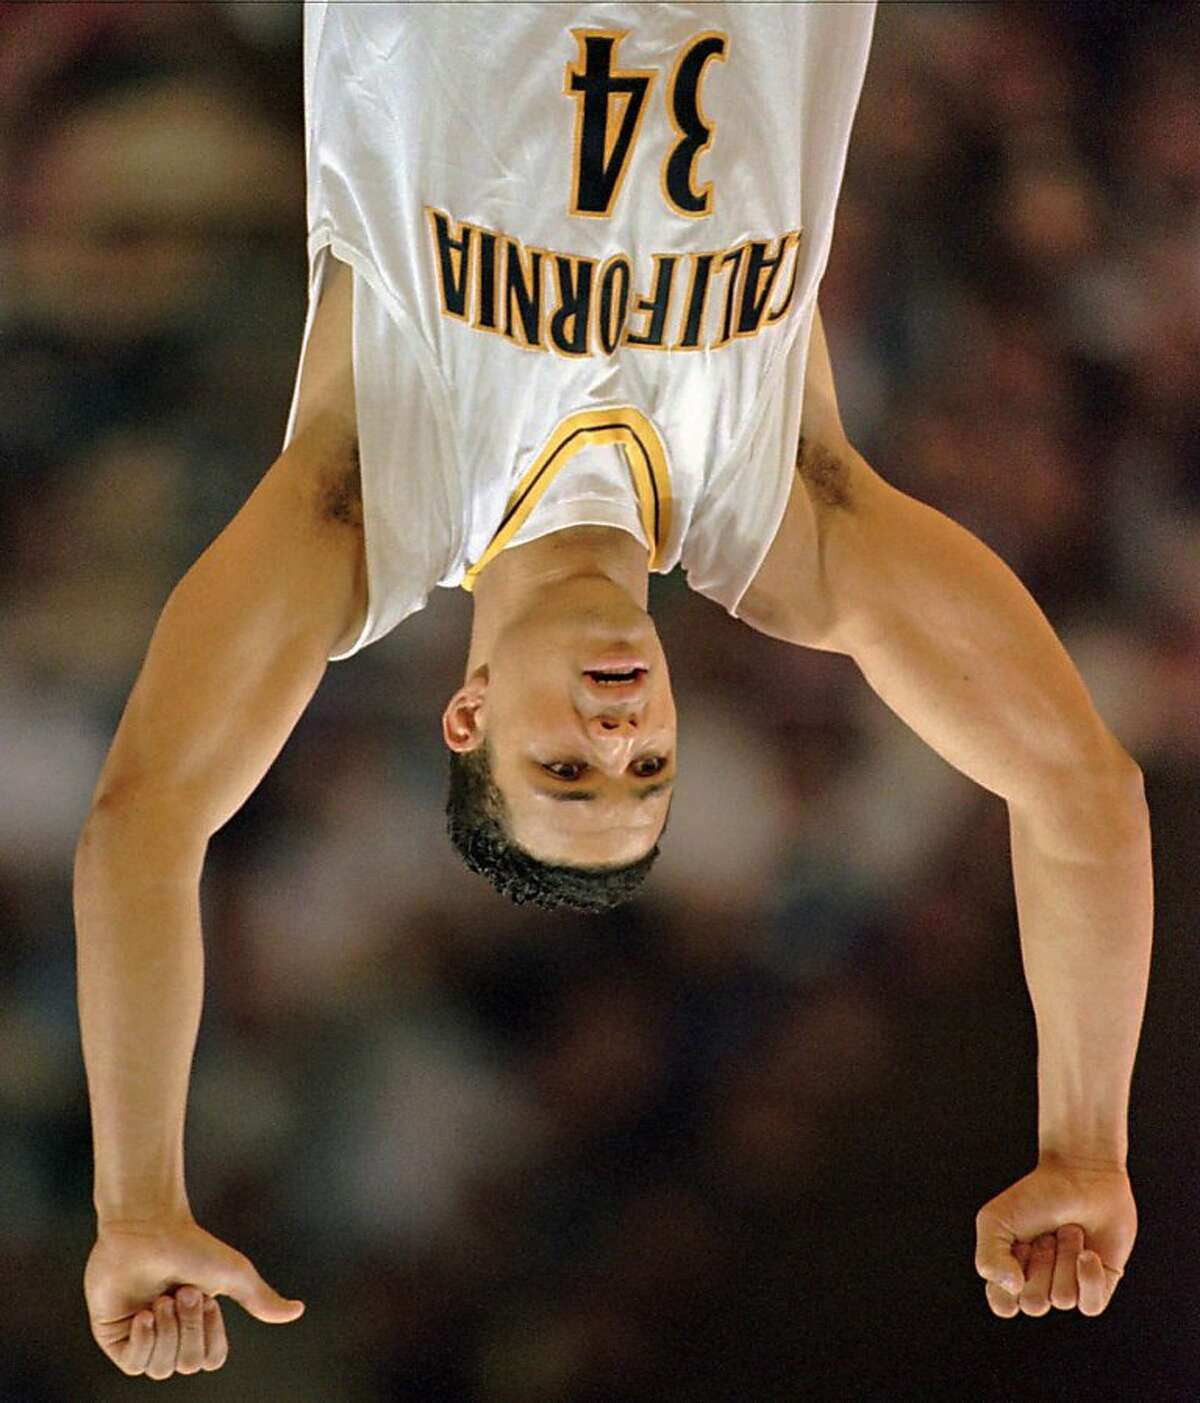 California forward Tony Gonzalez raises his arms in victory after the Golden Bears defeated the Princeton Tigers 55-52 in the first round of the NCAA East Regional tournament on Thursday, March 13, 1997, in Winston-Salem, N.C. Gonzalez scored all five of Califonia's points in the last minute to secure the victory. (AP Photo/John Bazemore)